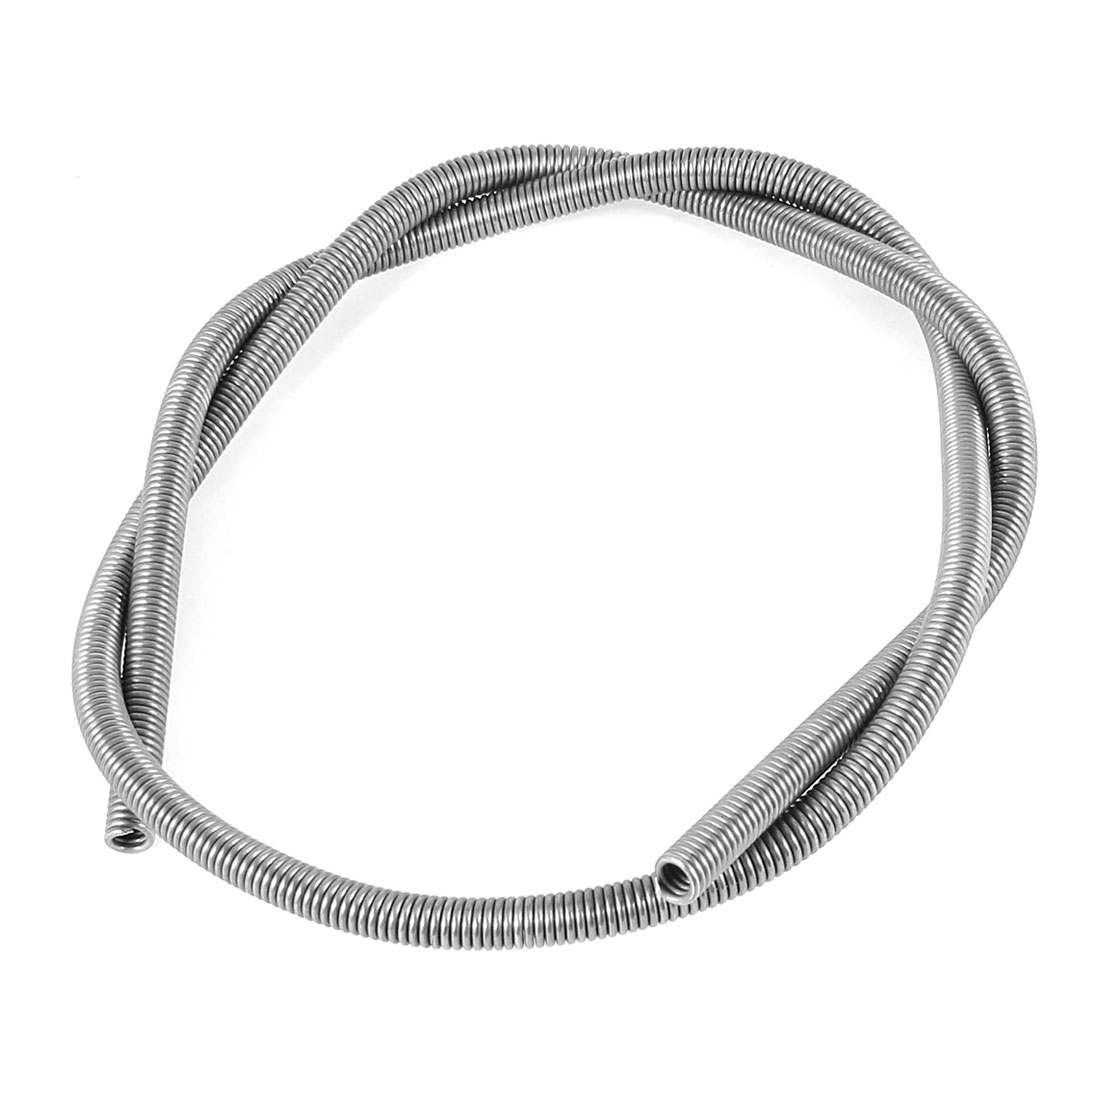 220V 4500W Watts 82mm x 7.2mm Heater Heating Element Coil Heater Wire Leads for Kiln Furnace